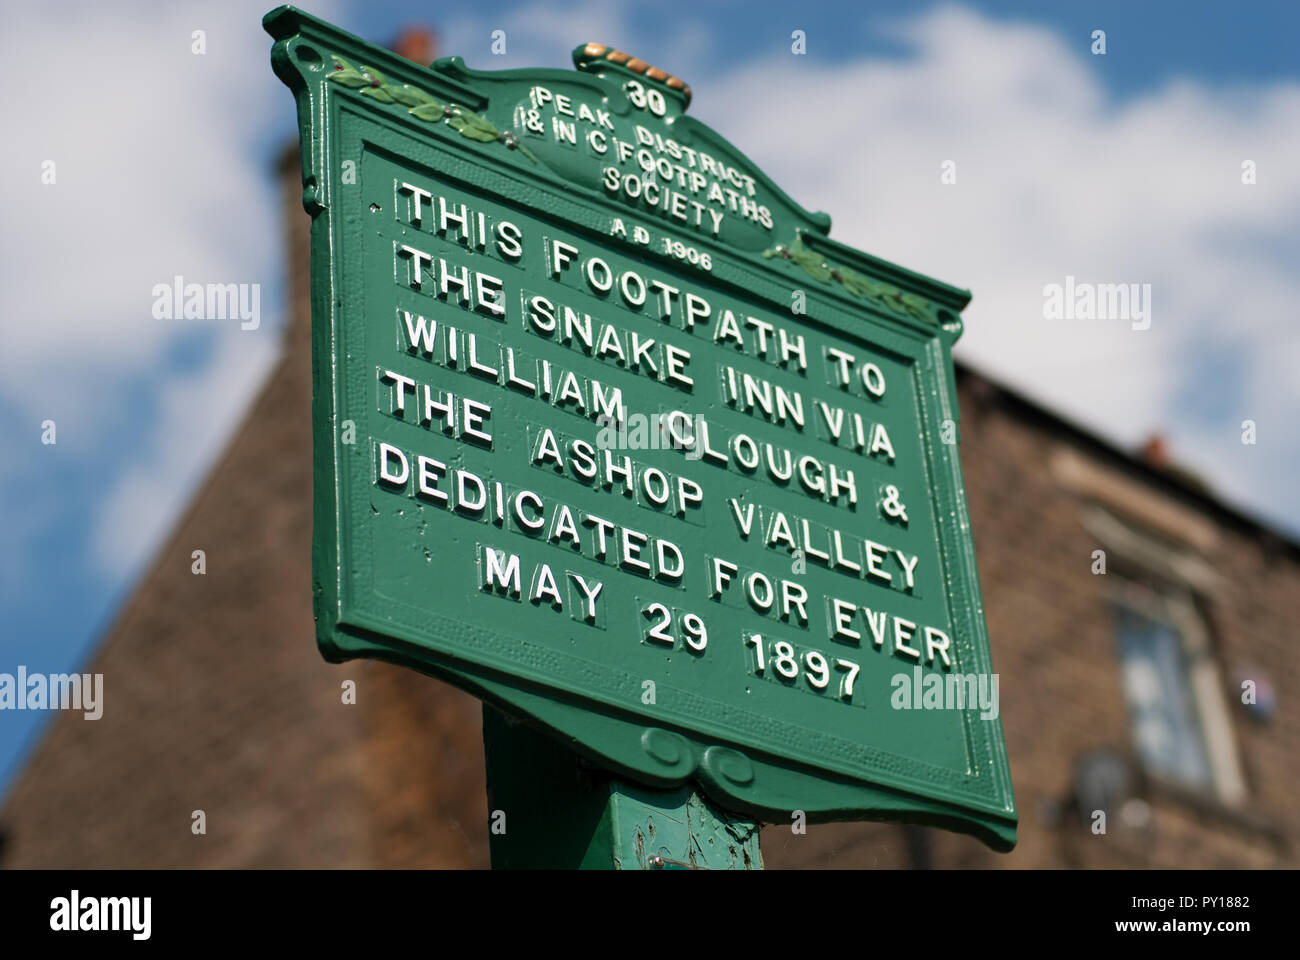 Footpath sign in Hayfield, Derbyshire - Stock Image